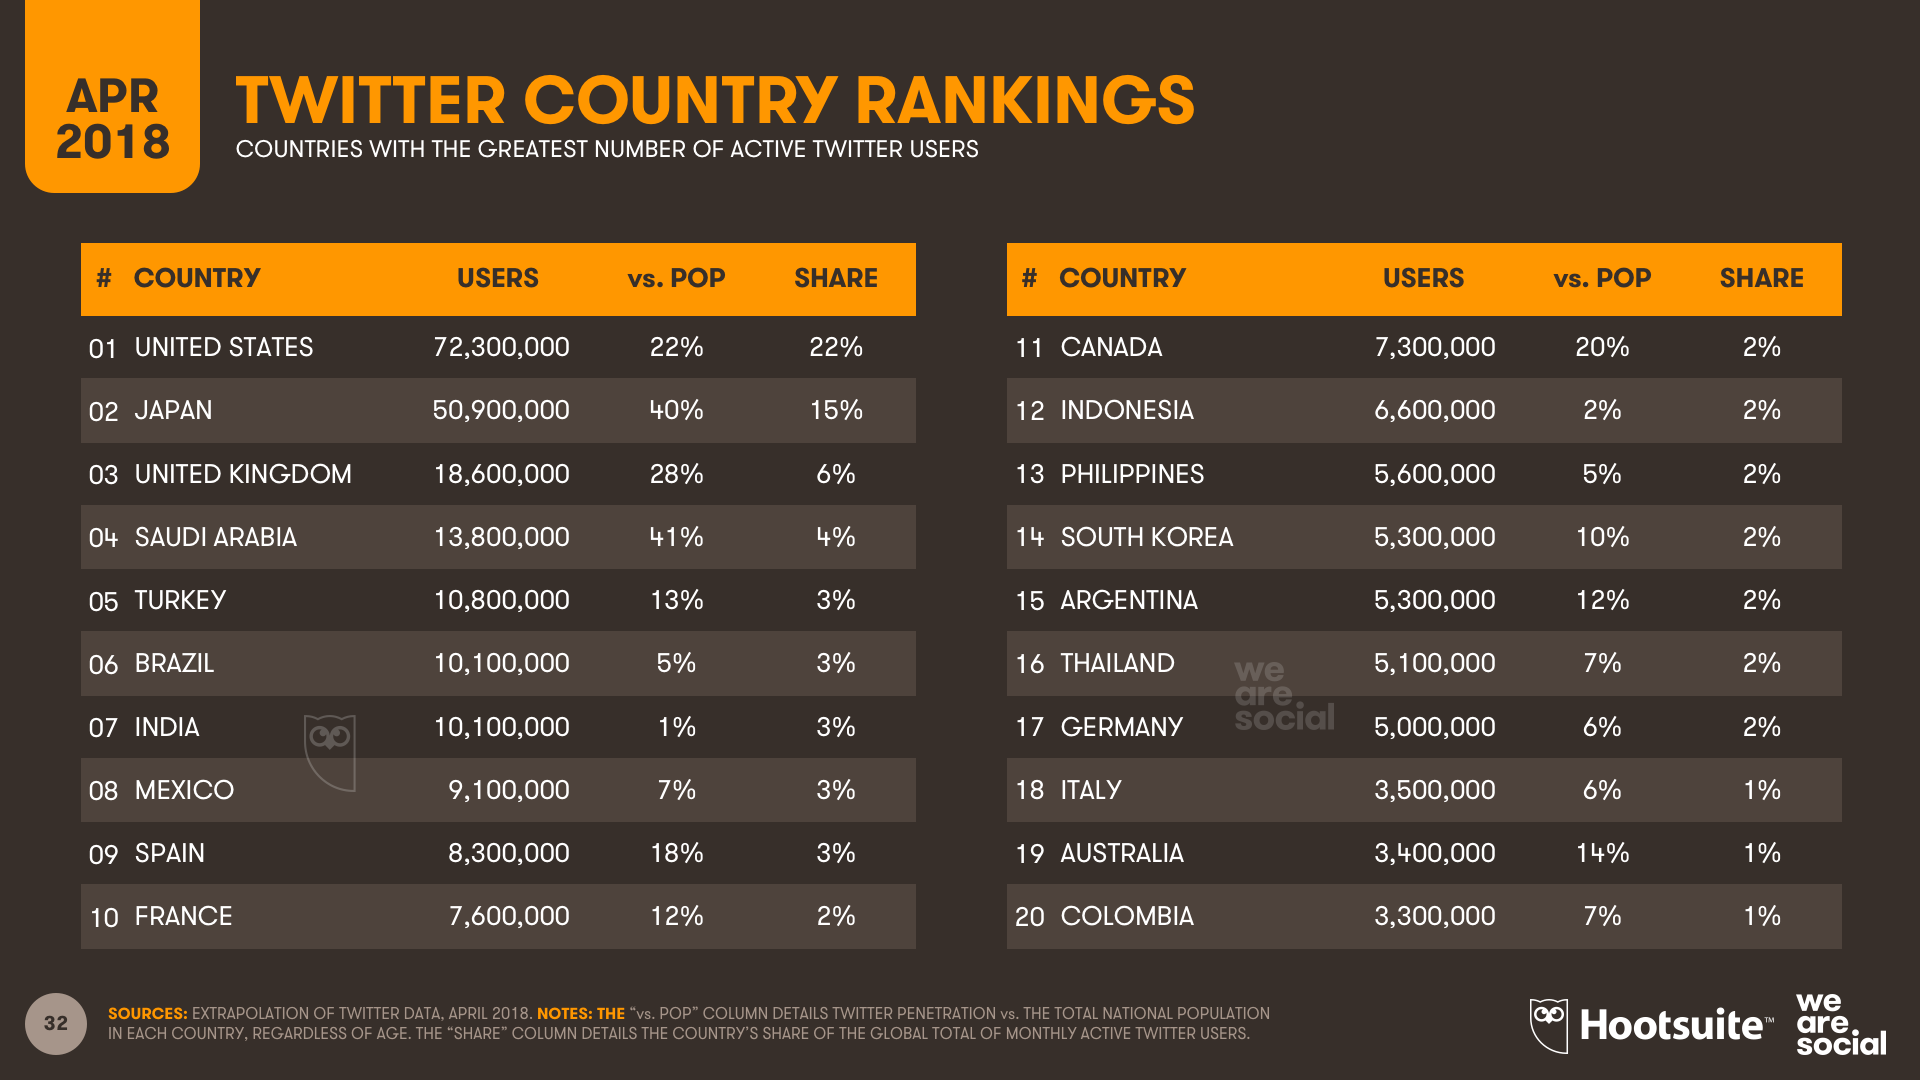 Twitter's Top Countries by Active Users, April 2018